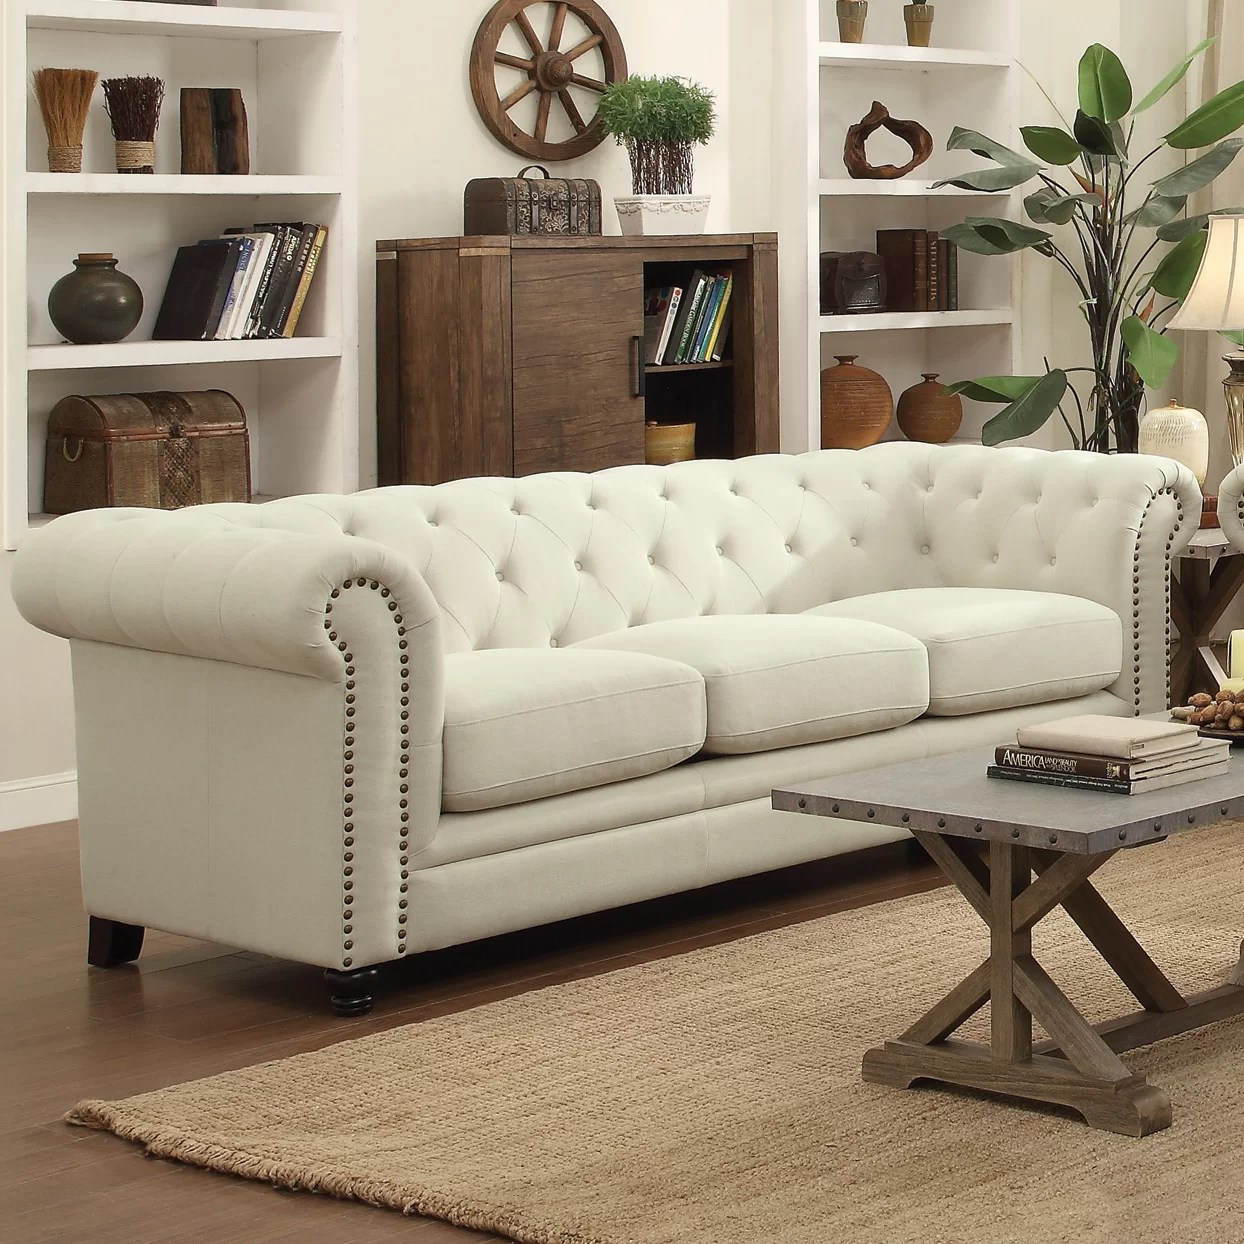 Sofa Couch Or Chesterfield Dalila Chesterfield Sofa